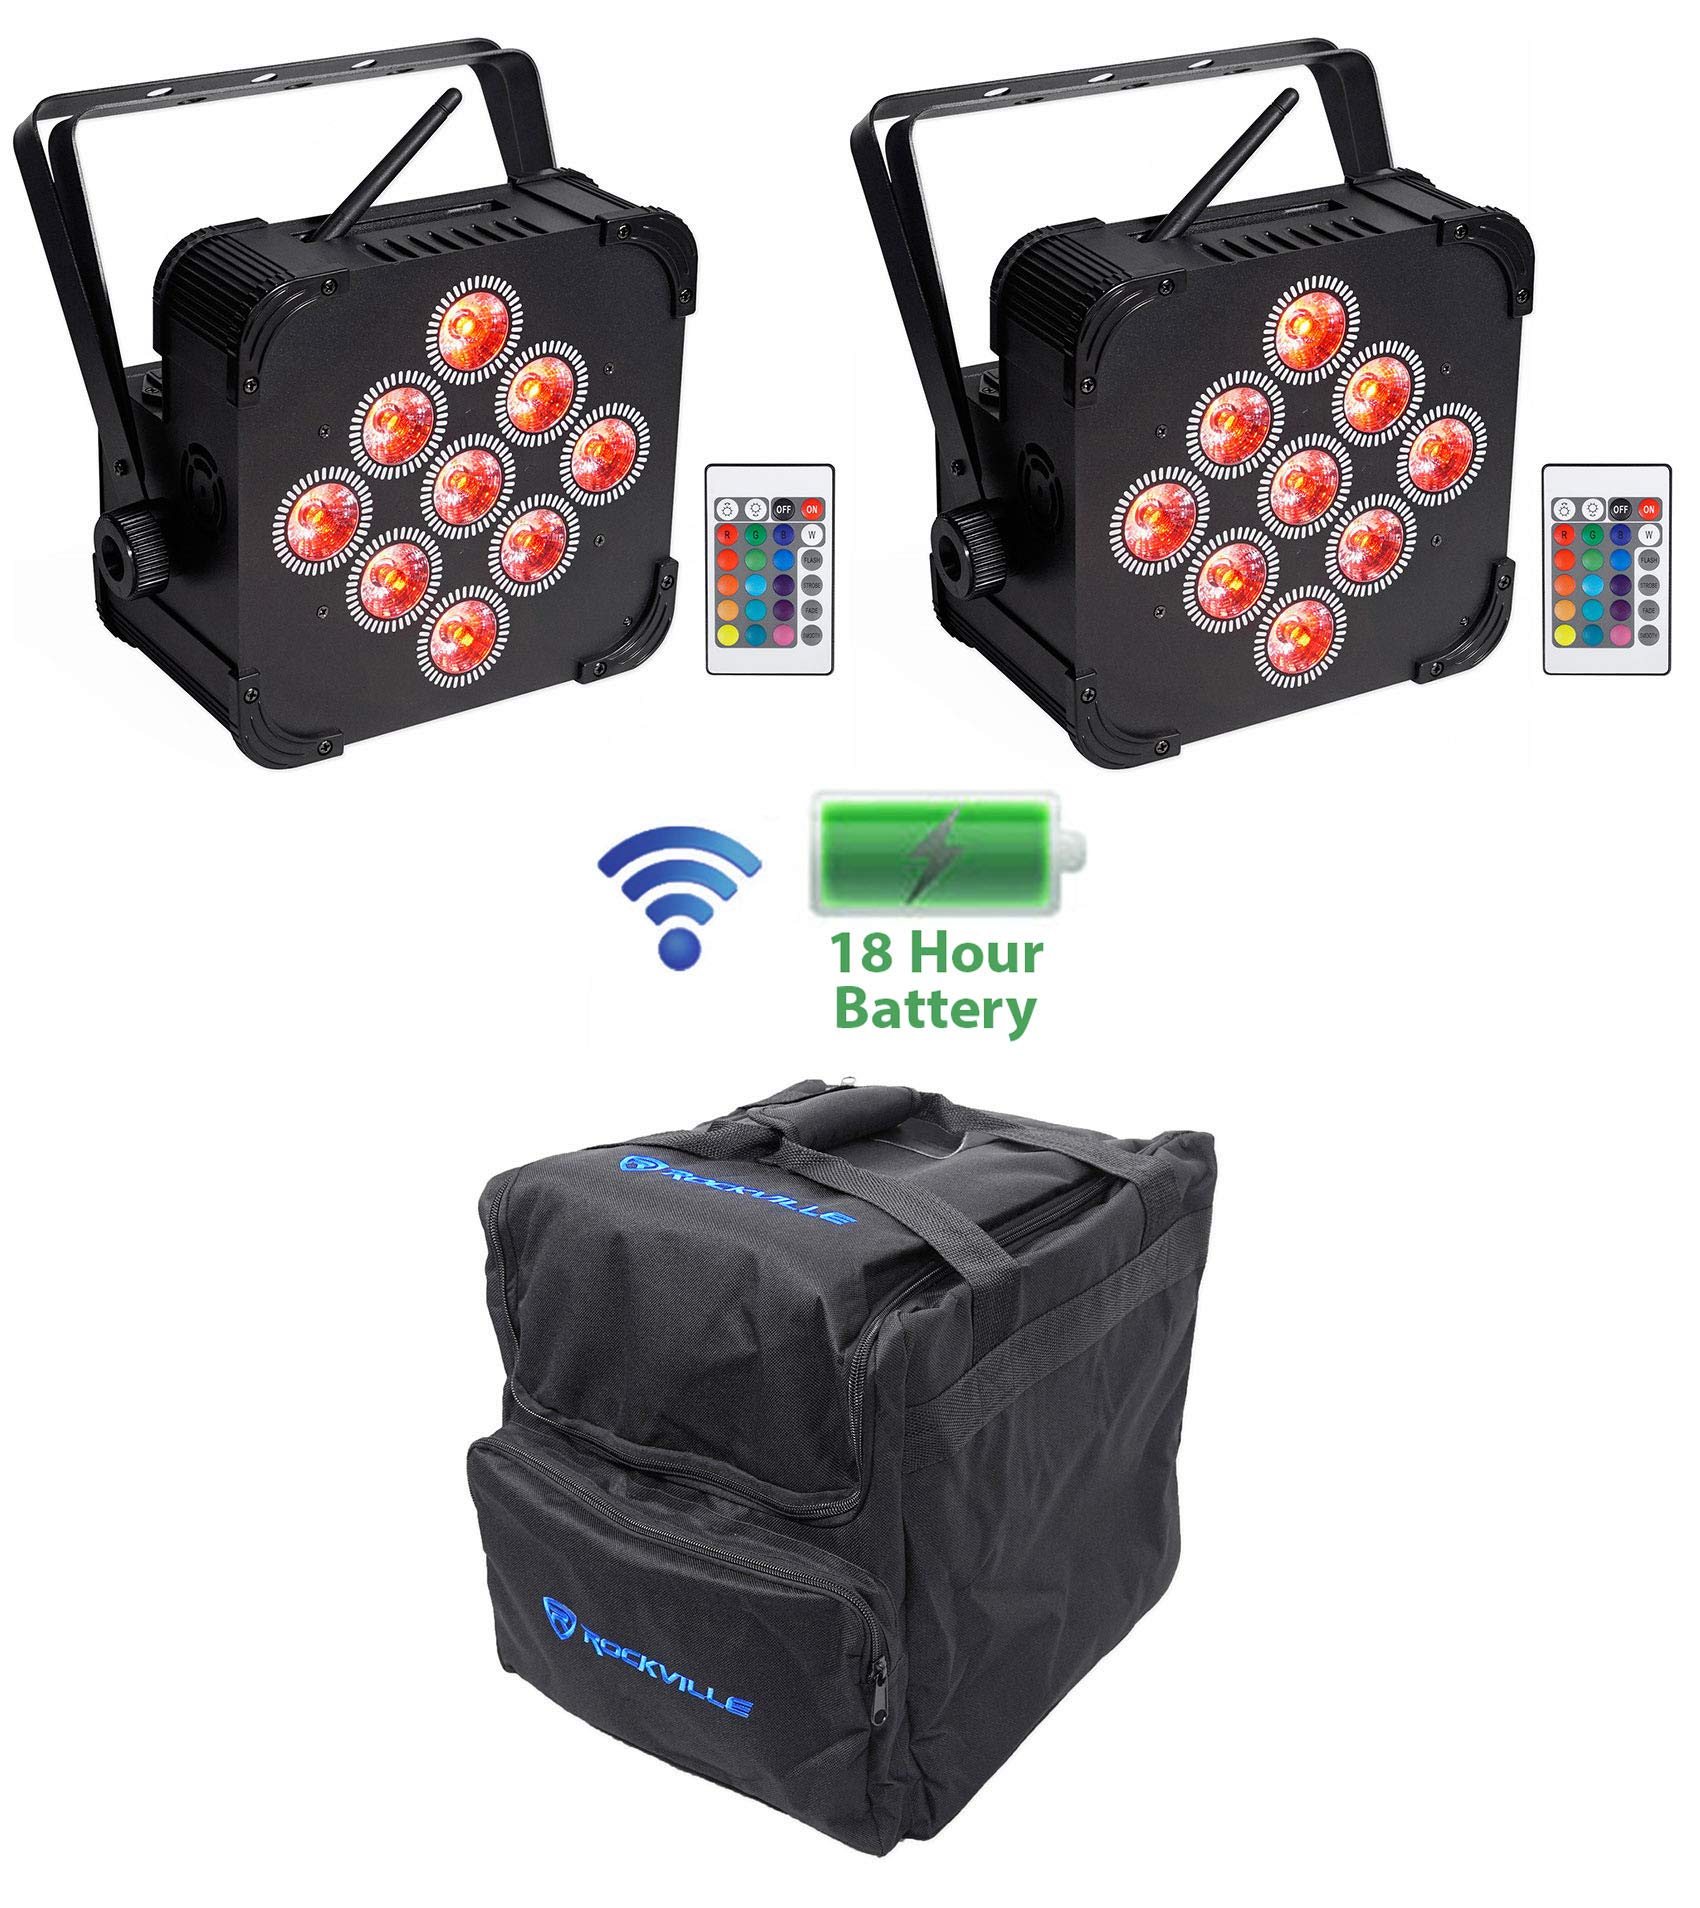 (2) Rockville BEST PAR 60 Rechargeable Wash Lights w/Wireless DMX+RGBWA+UV+Bag by Rockville